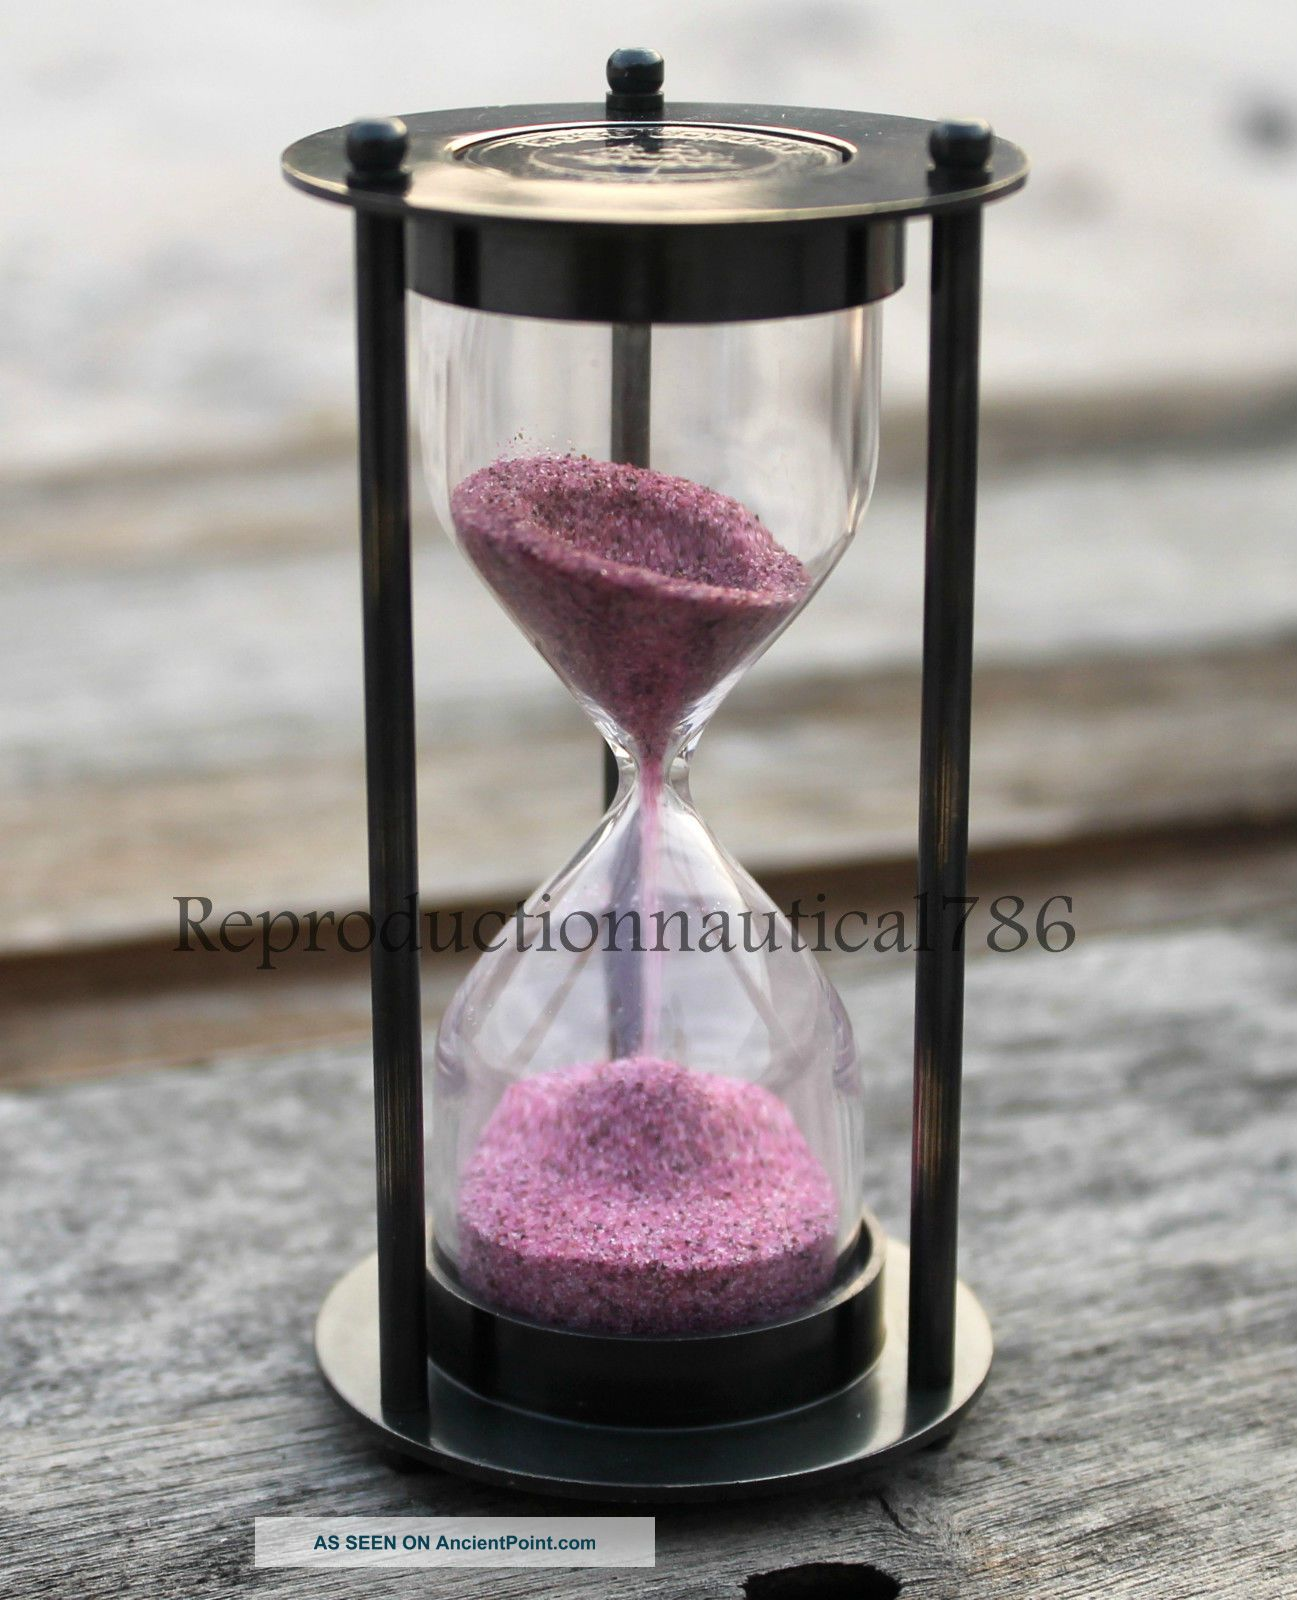 Vintage Antique Hour Glass Sand Timer Maritime Marine Desk Top Decorative Gift Other Maritime Antiques photo